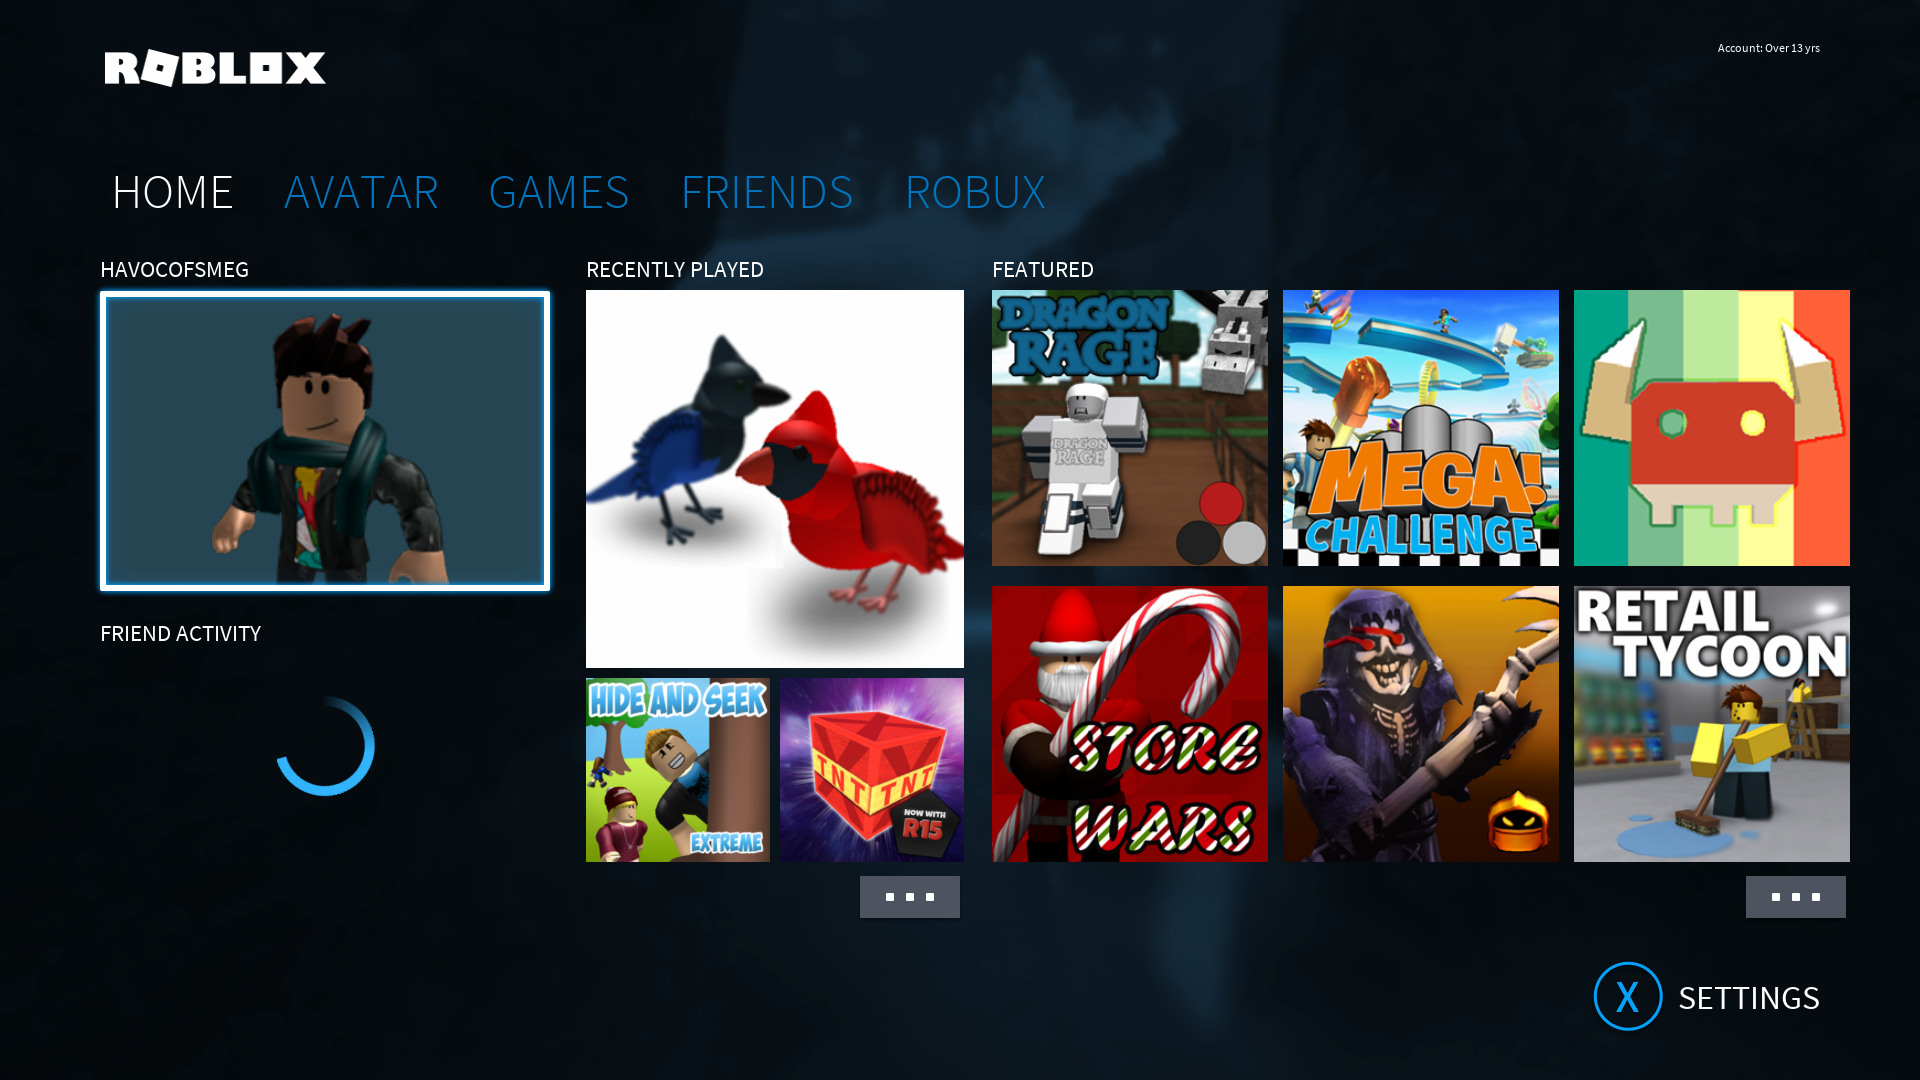 Bets games onroblox on xbox sports betting explained uk athletics